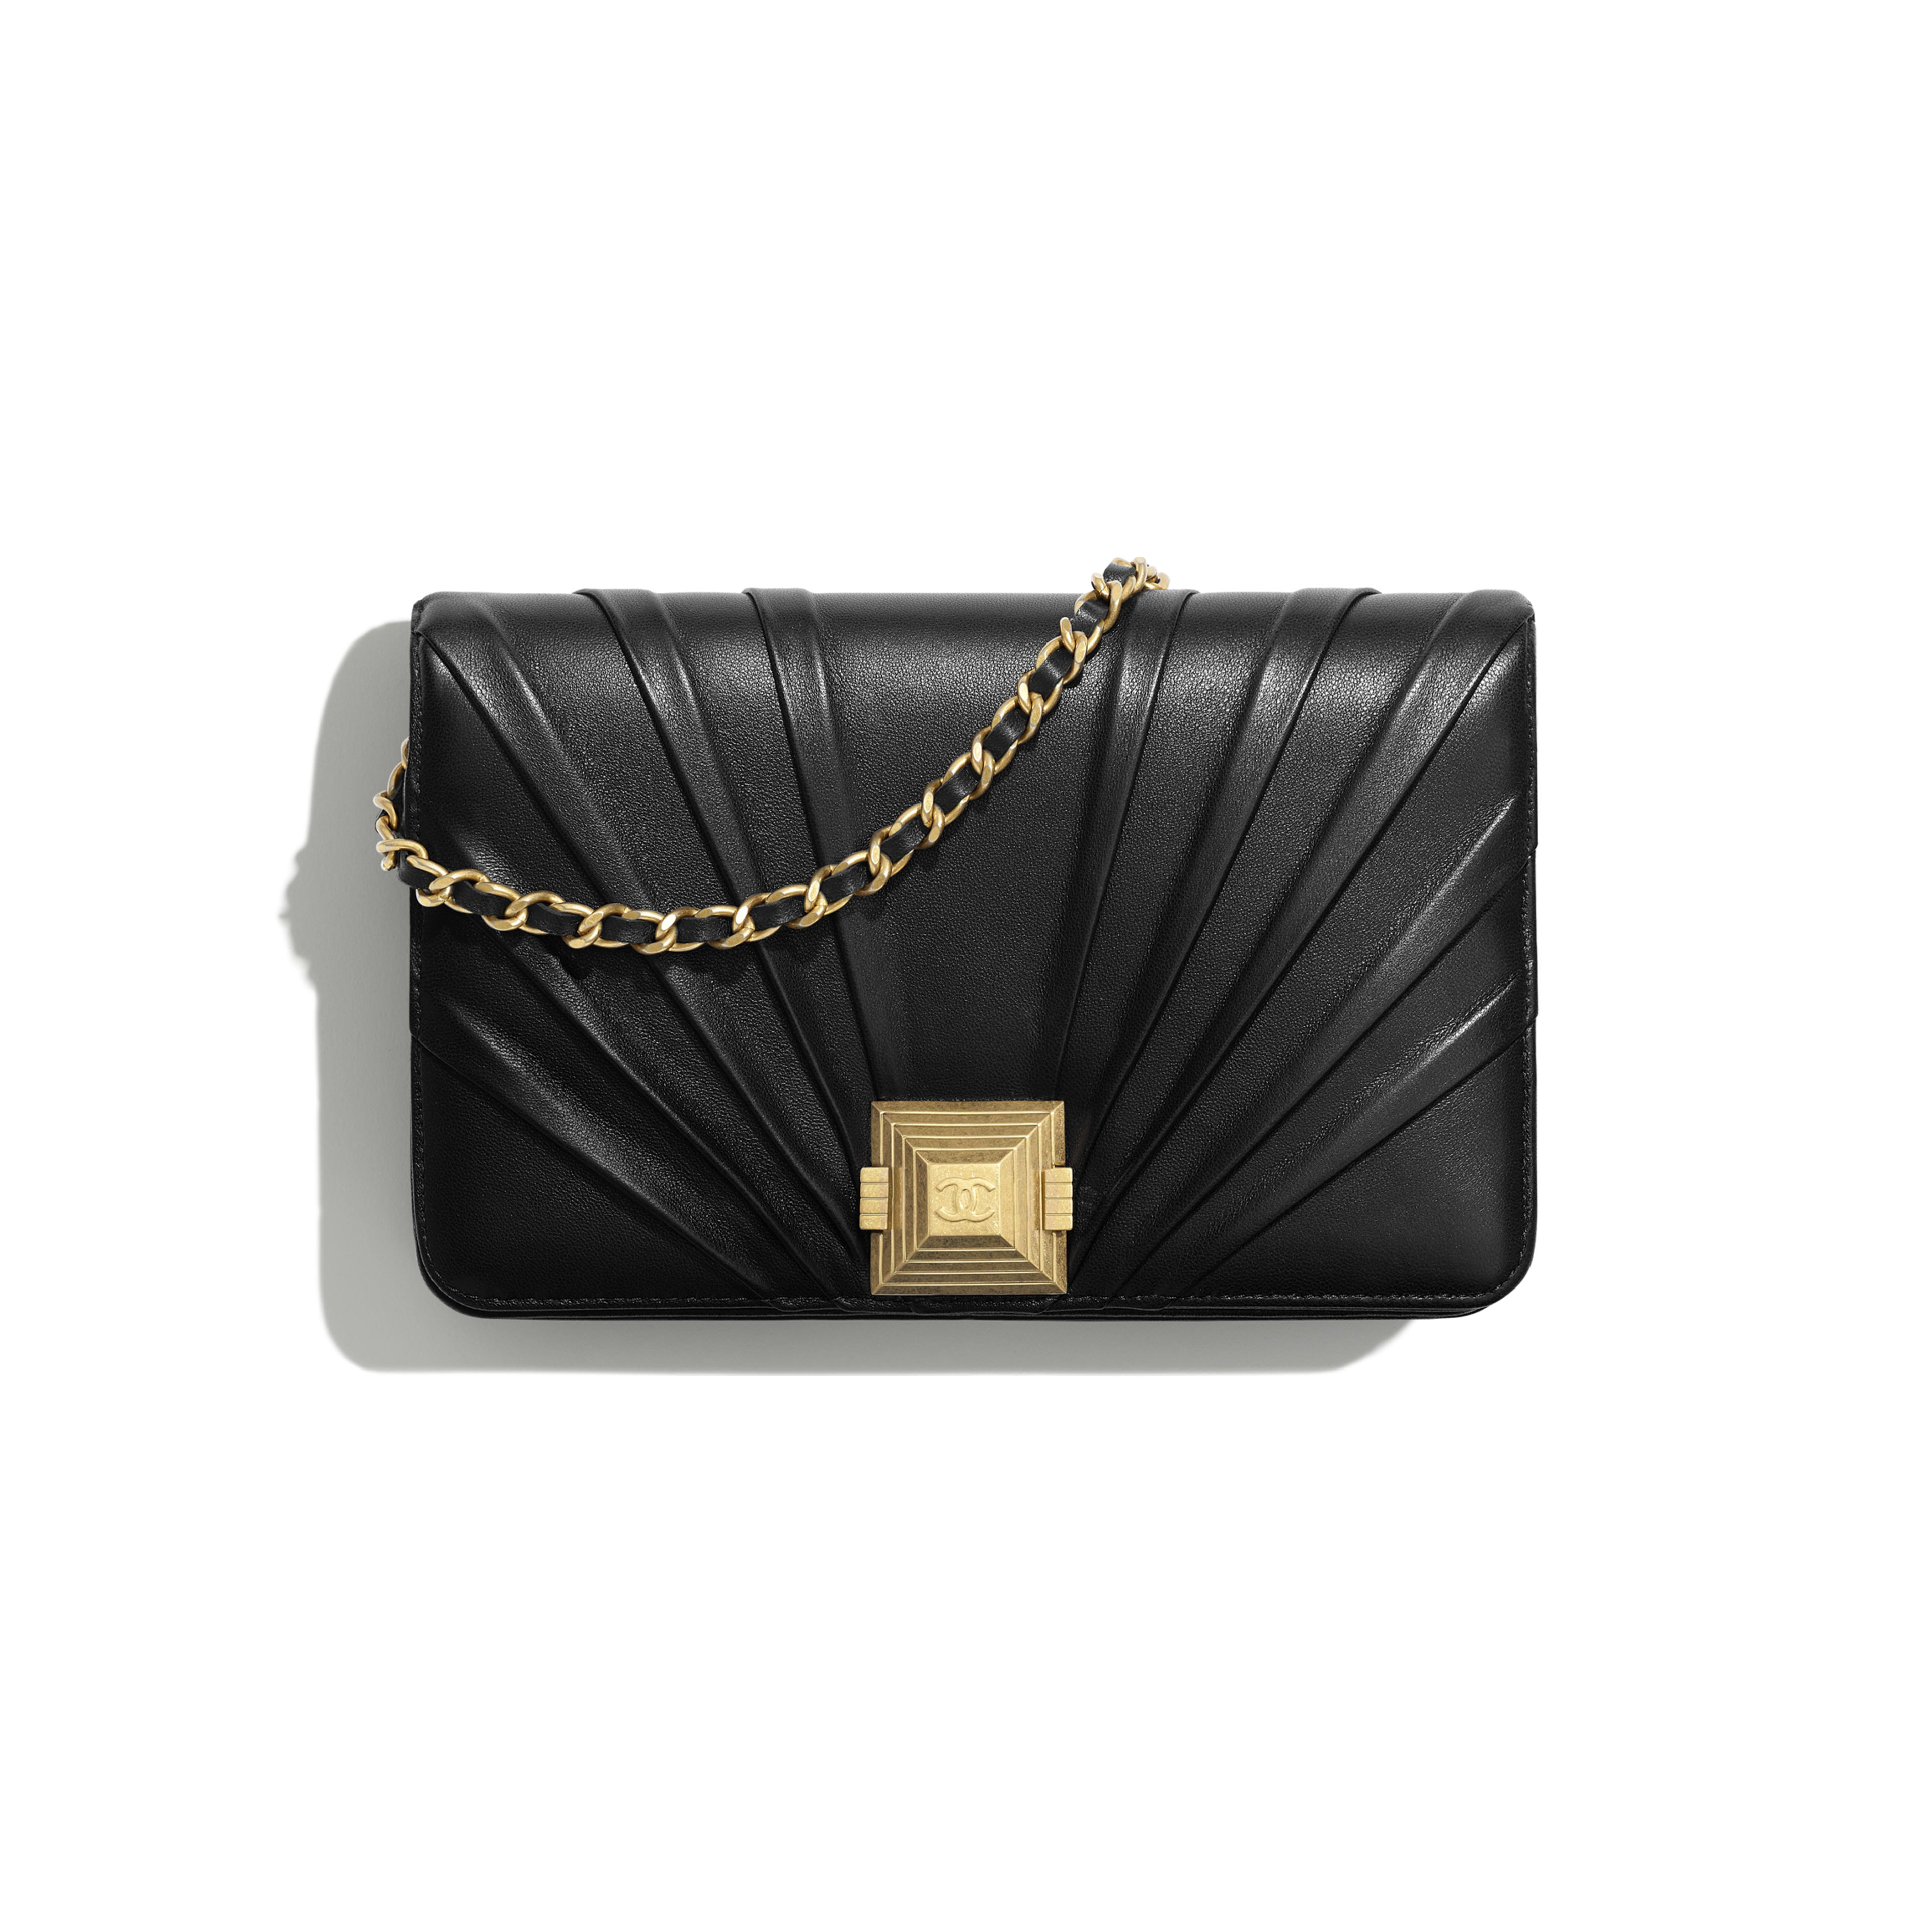 Wallet on Chain - Black - Pleated Lambskin & Gold-Tone Metal - Default view - see full sized version